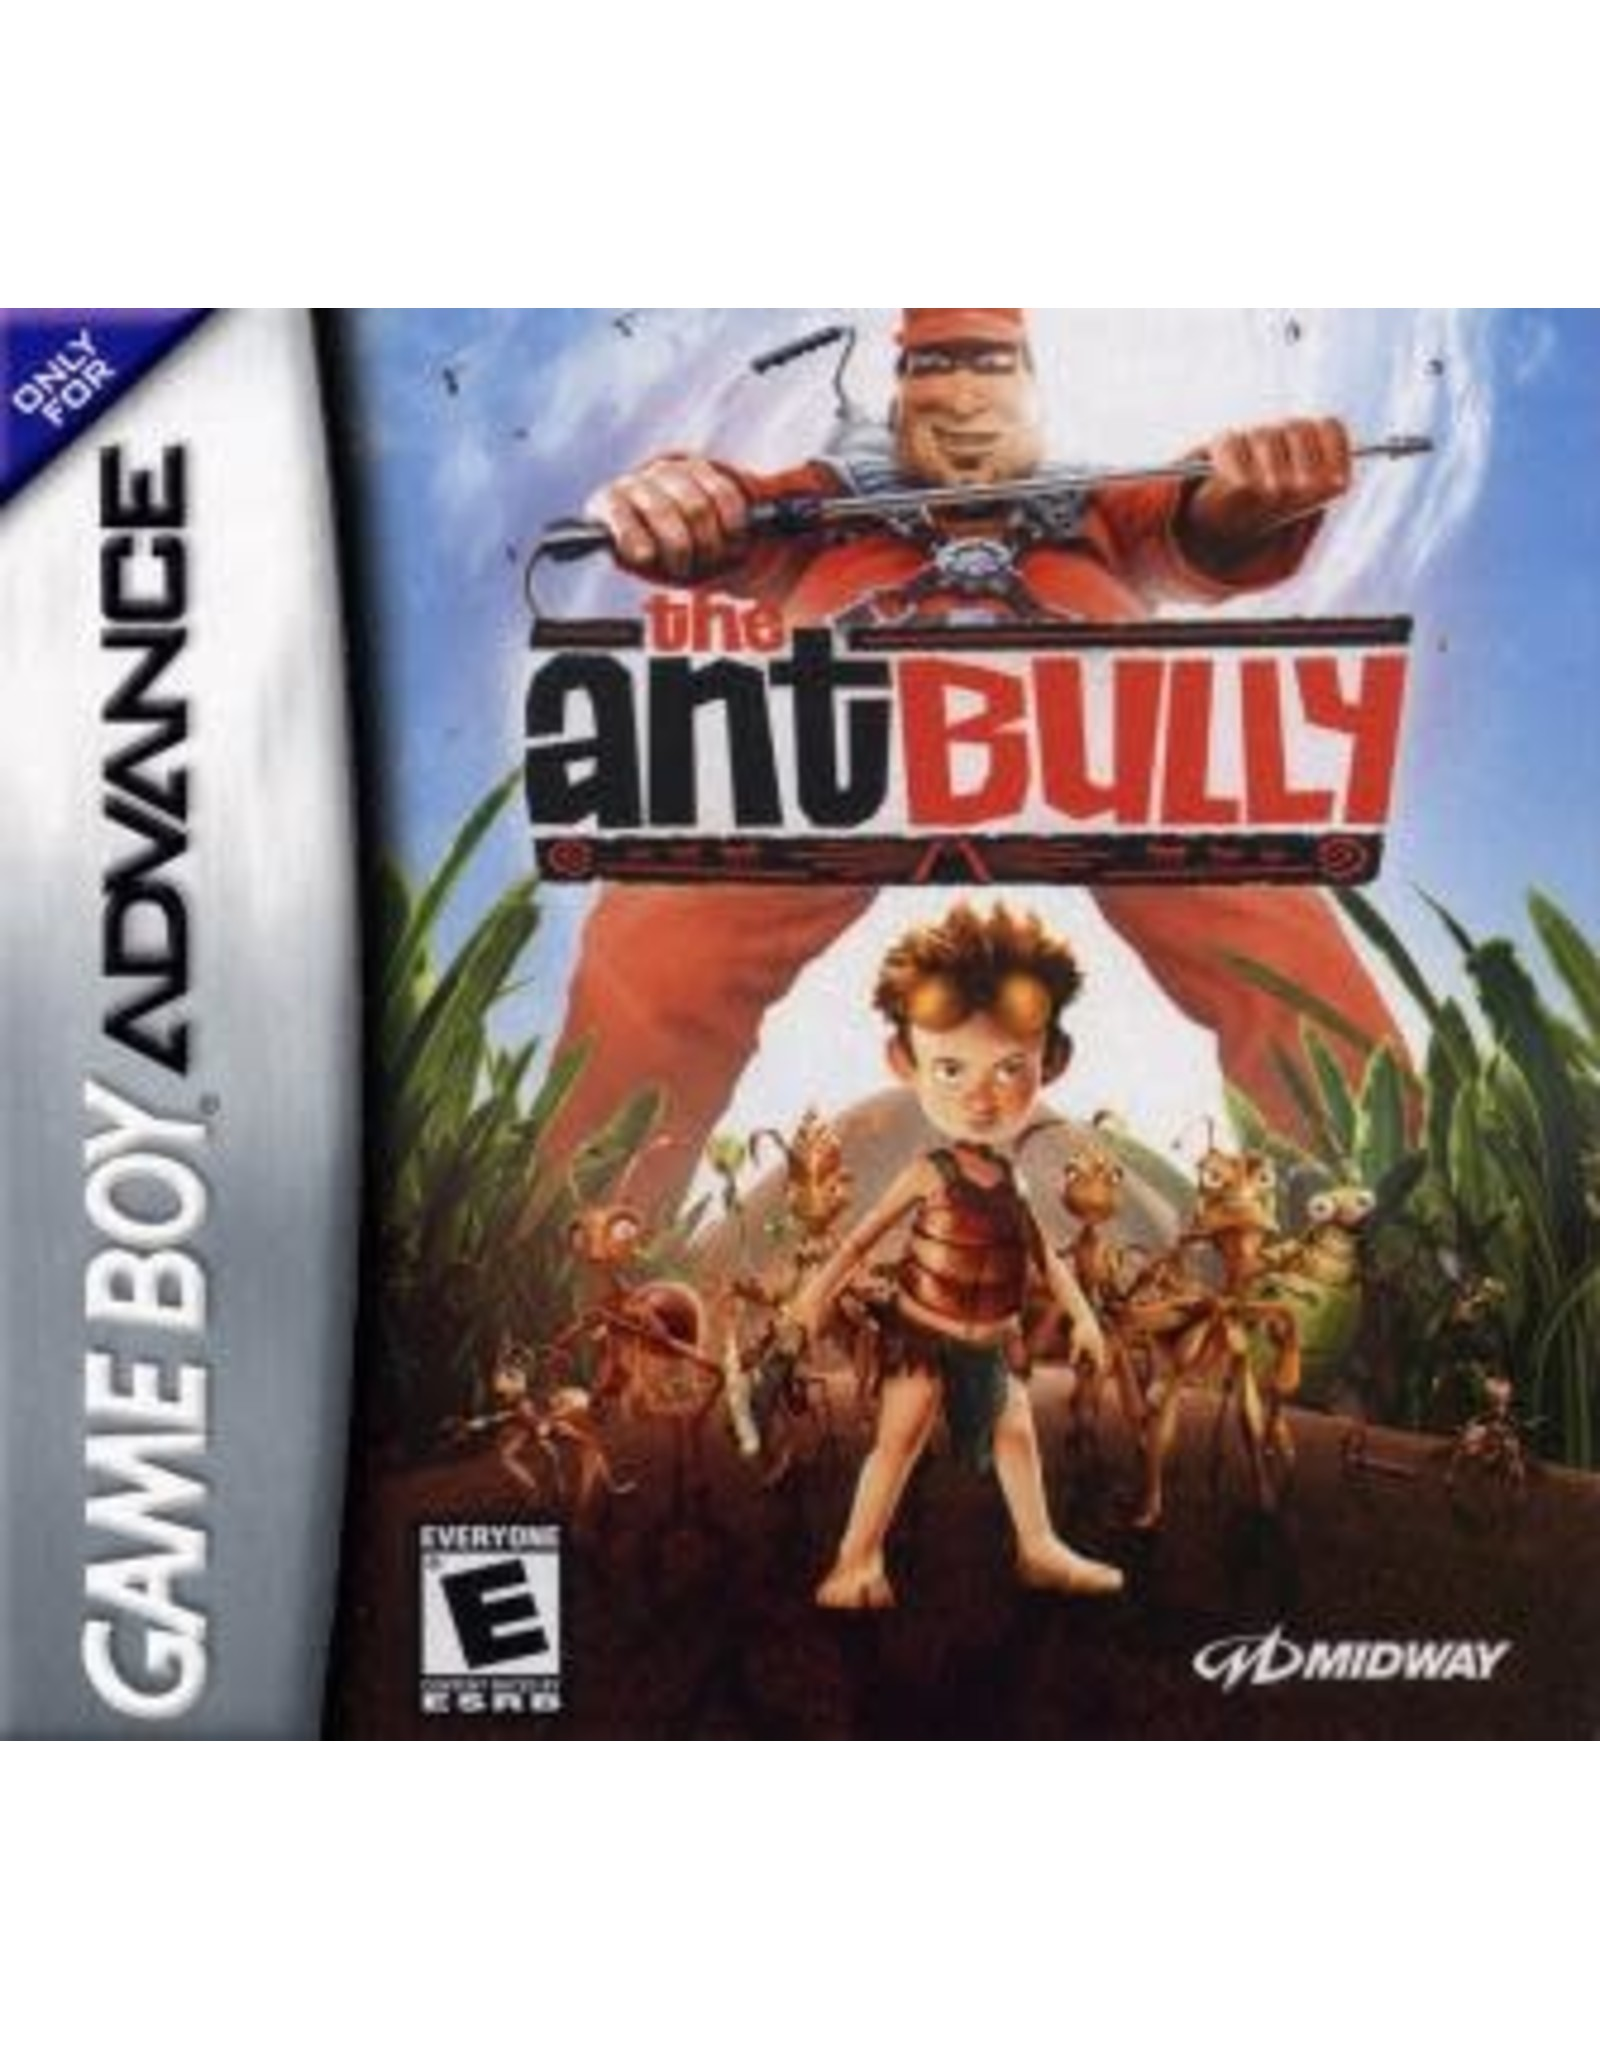 GameBoy Advance Ant Bully (Cart Only)